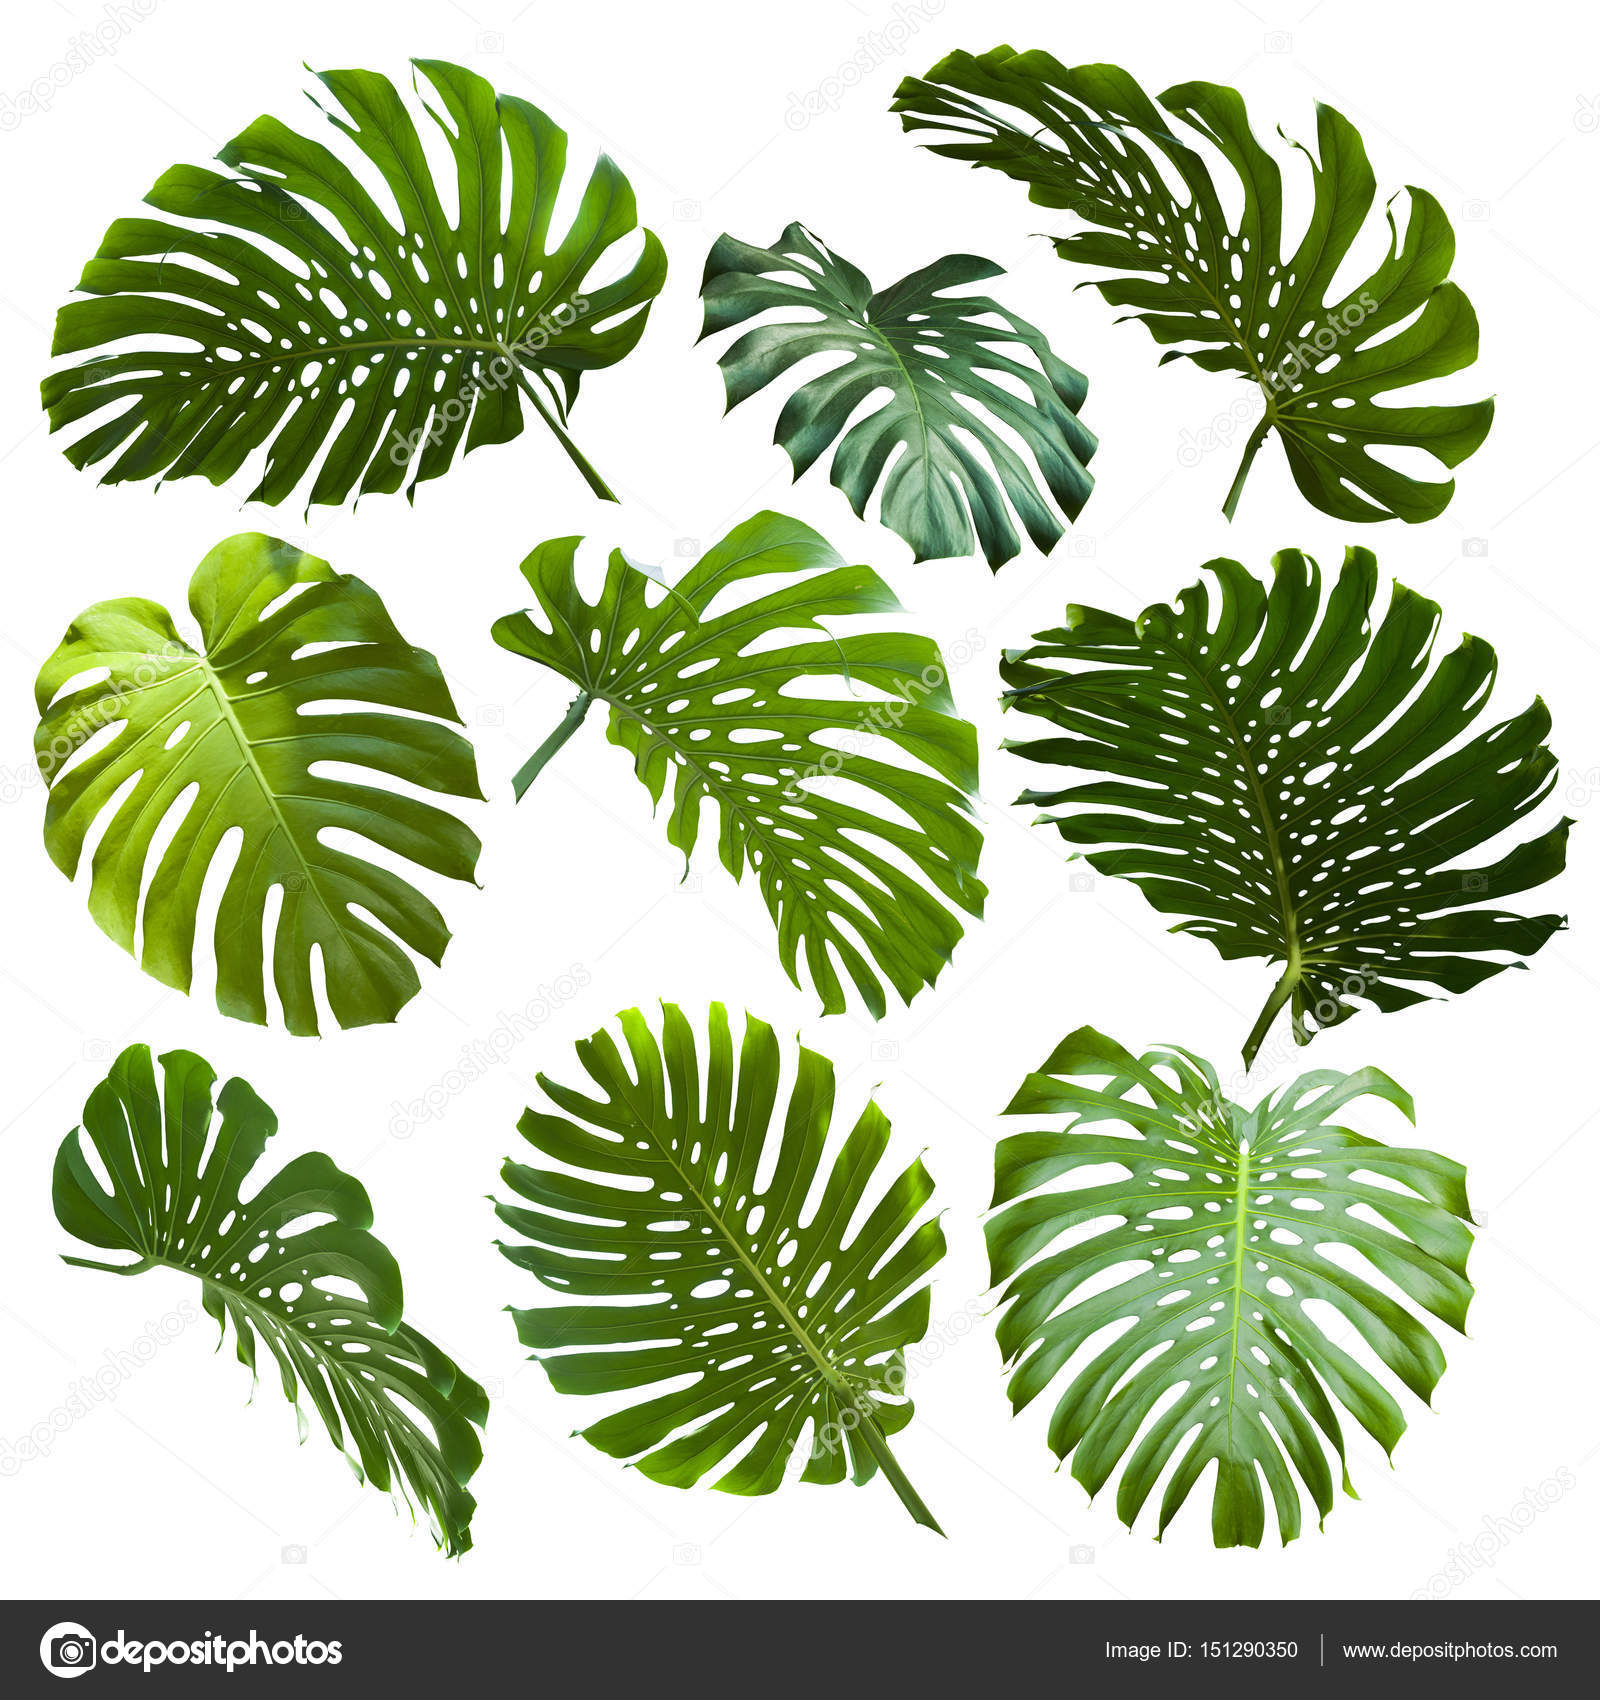 Tropical Jungle Leaves Stock Photo C Piolka 151290350 Ideal material for diy, wedding invitations, greeting cards the graphics are a png file, 300 dpi, without background. https depositphotos com 151290350 stock photo tropical jungle leaves html